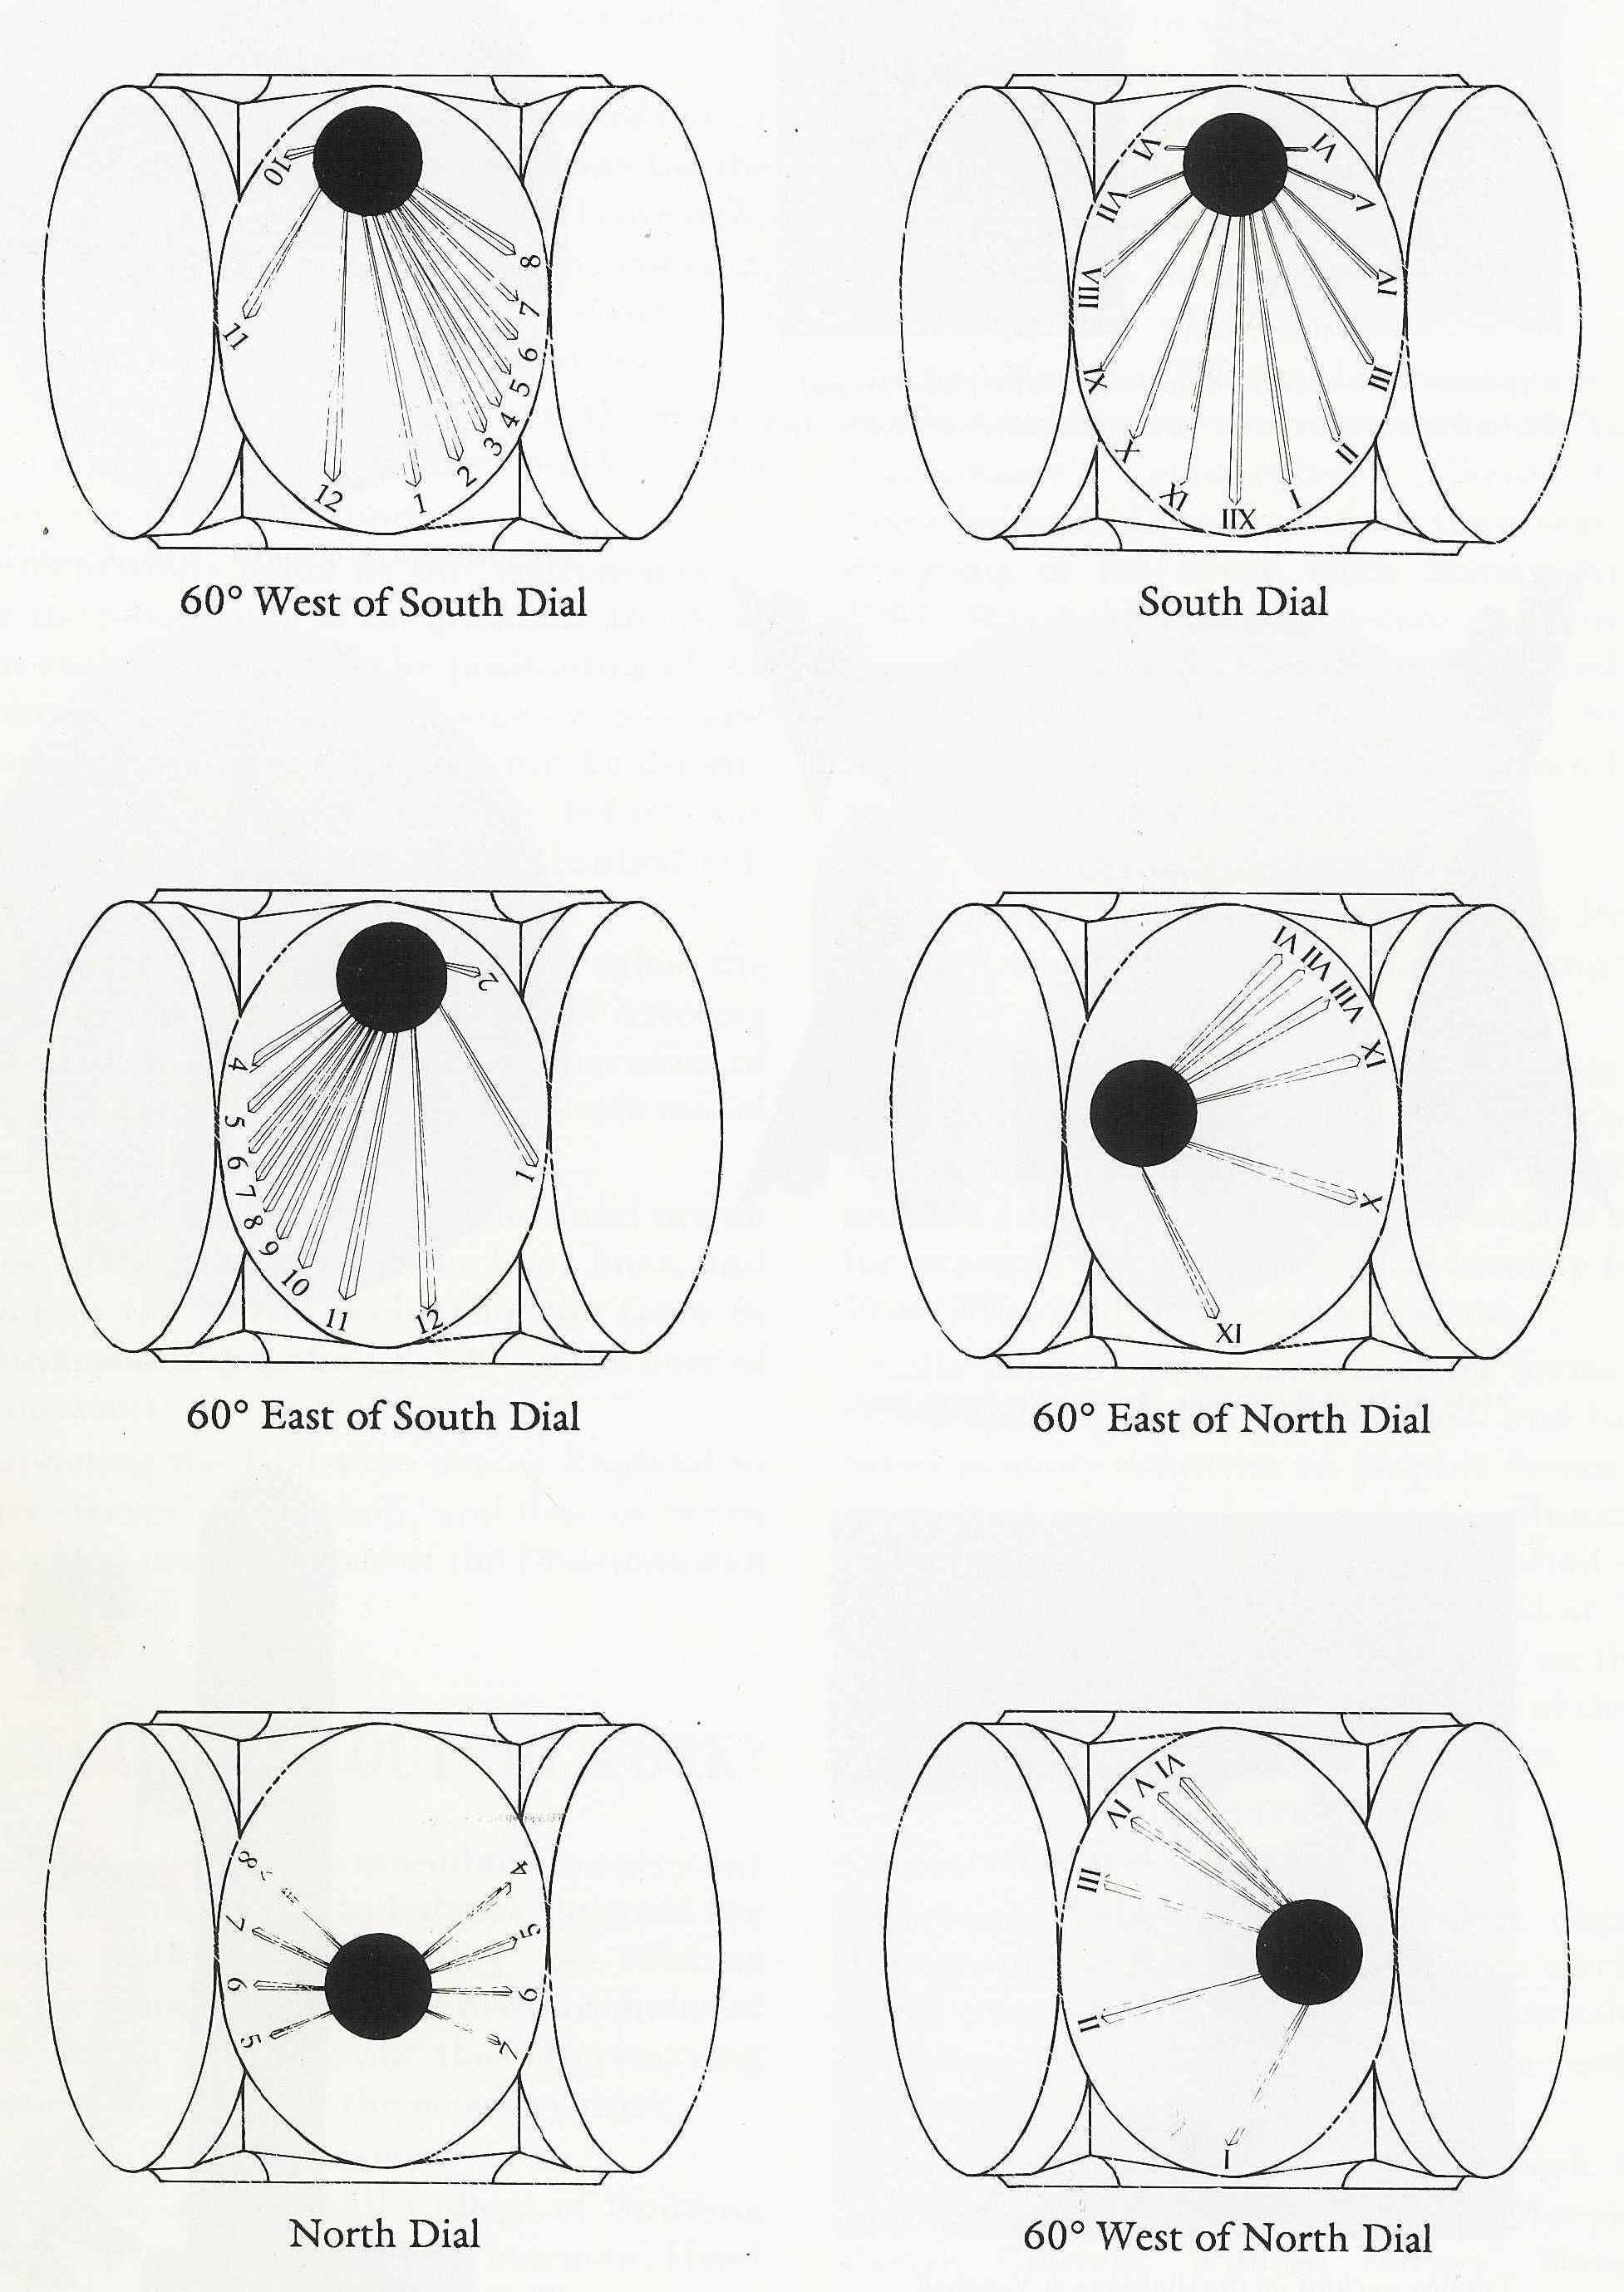 Drawings of the dial faces.